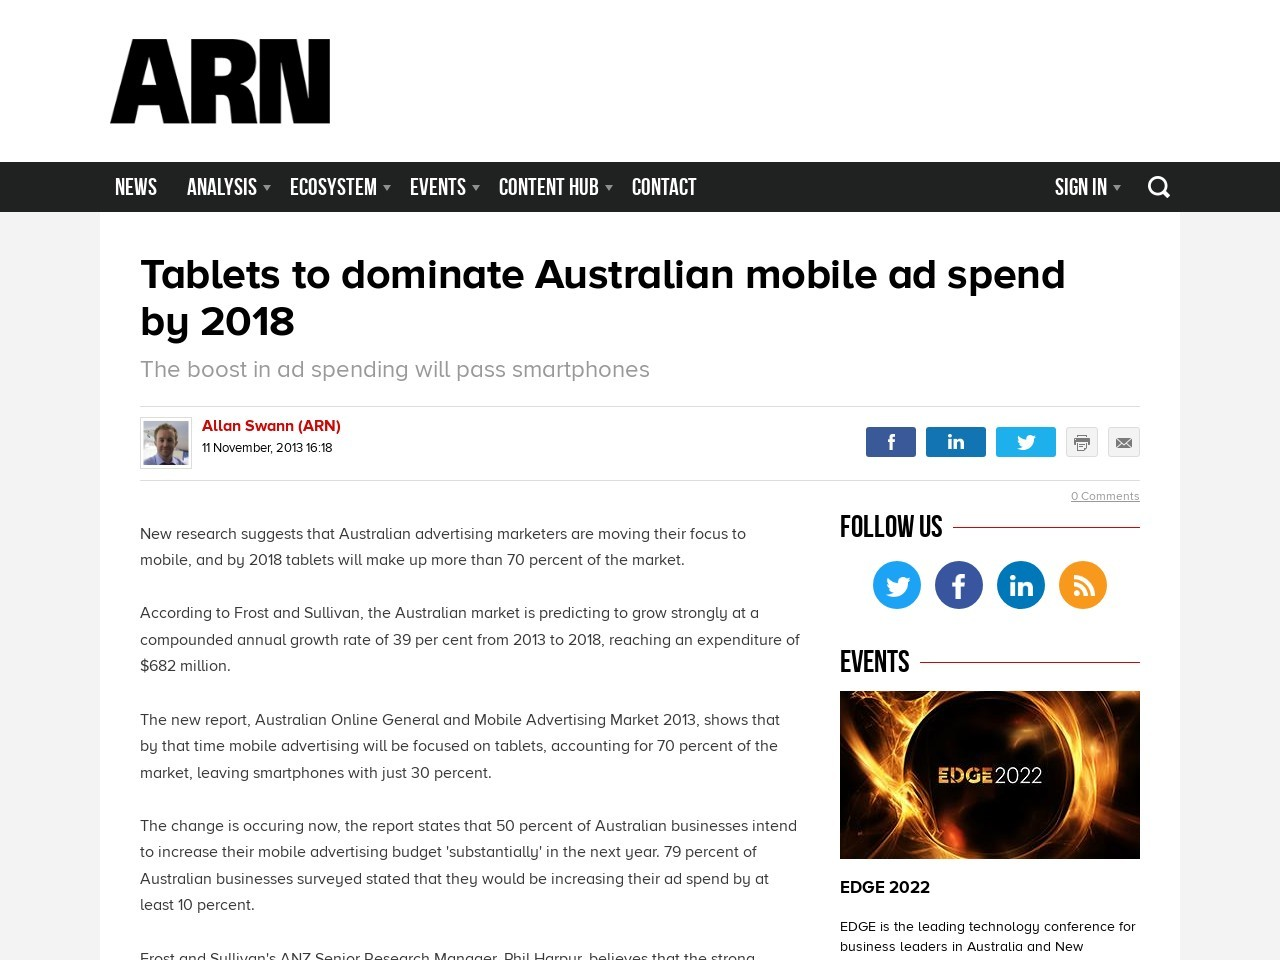 Tablets to dominate Australian mobile ad spend by 2018